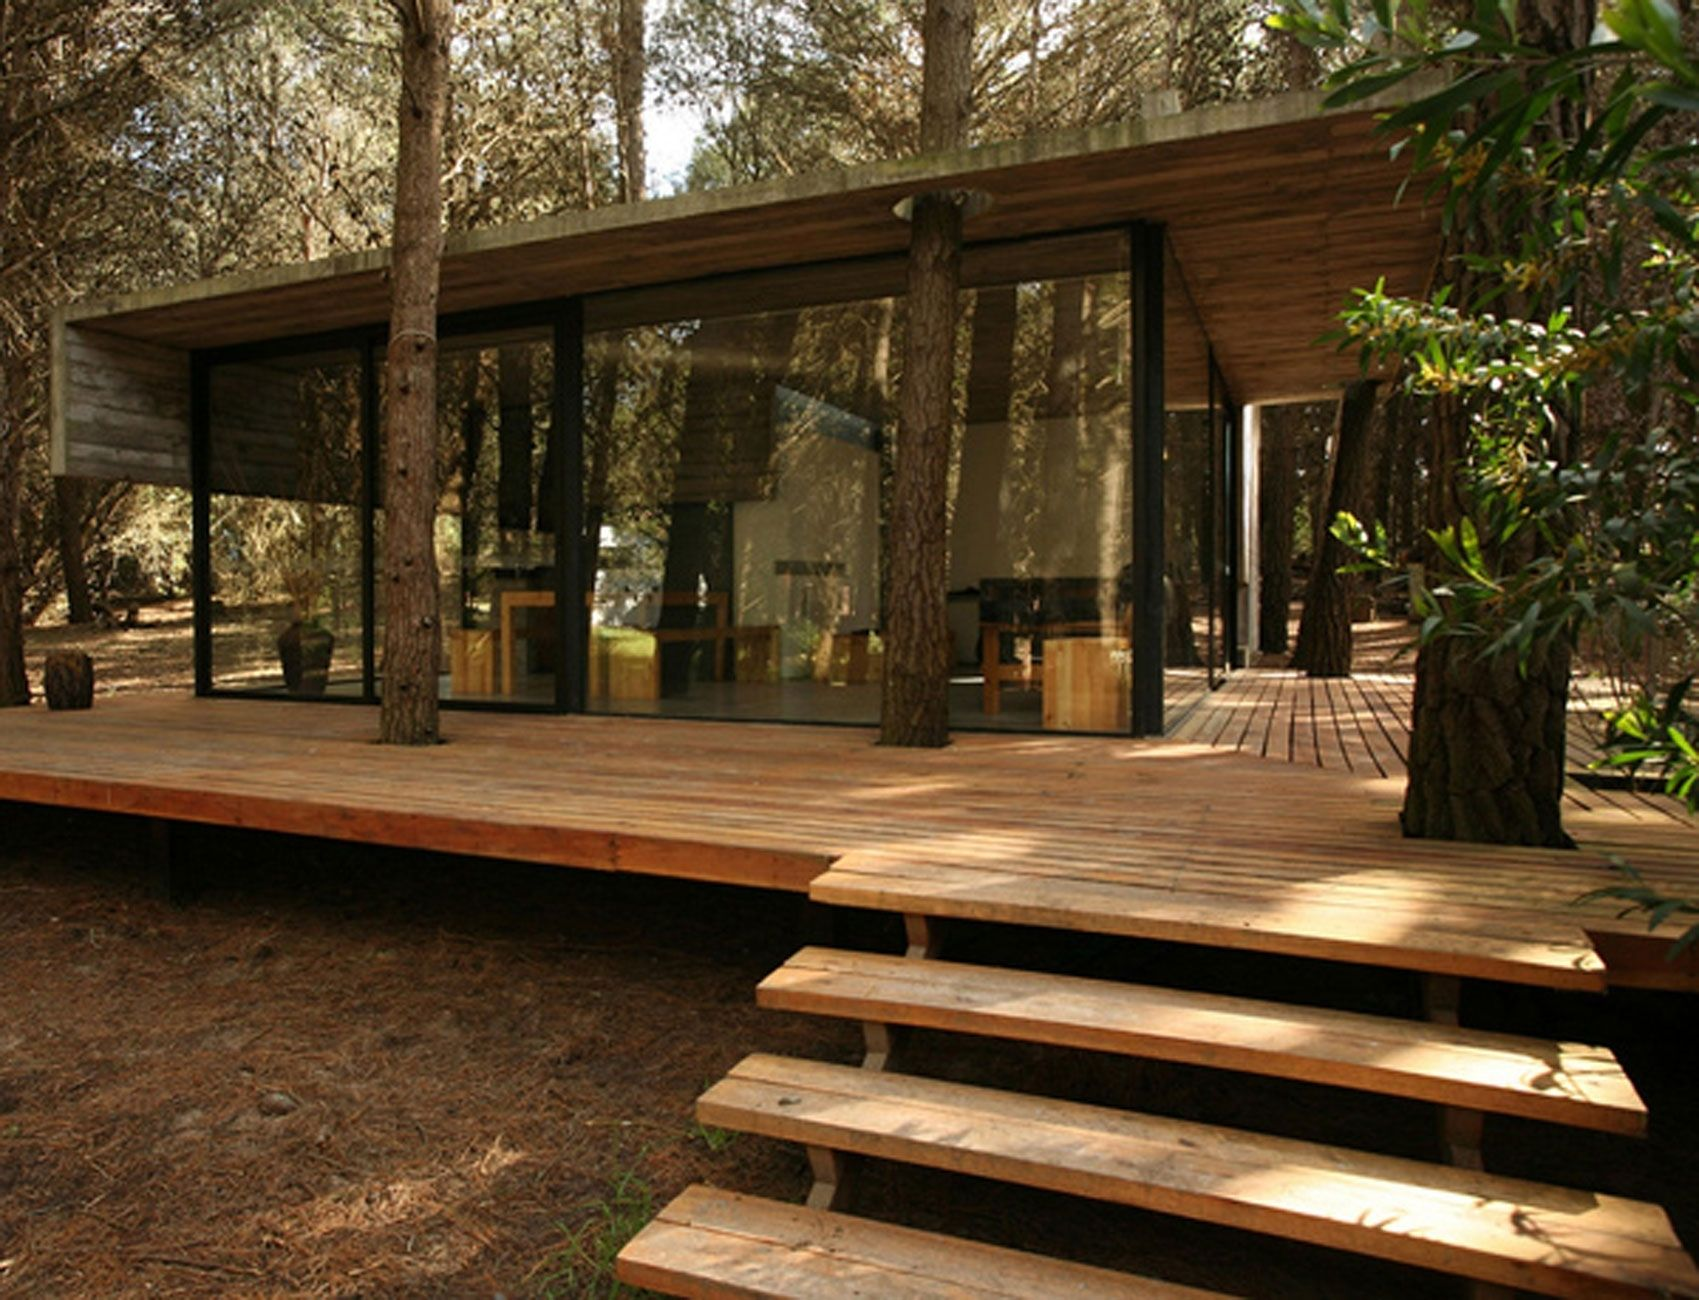 Contemporary And Unique Wooden House Design Ideas Beautiful Amazing Cool  Wooden House Architecture Design Exterior Home